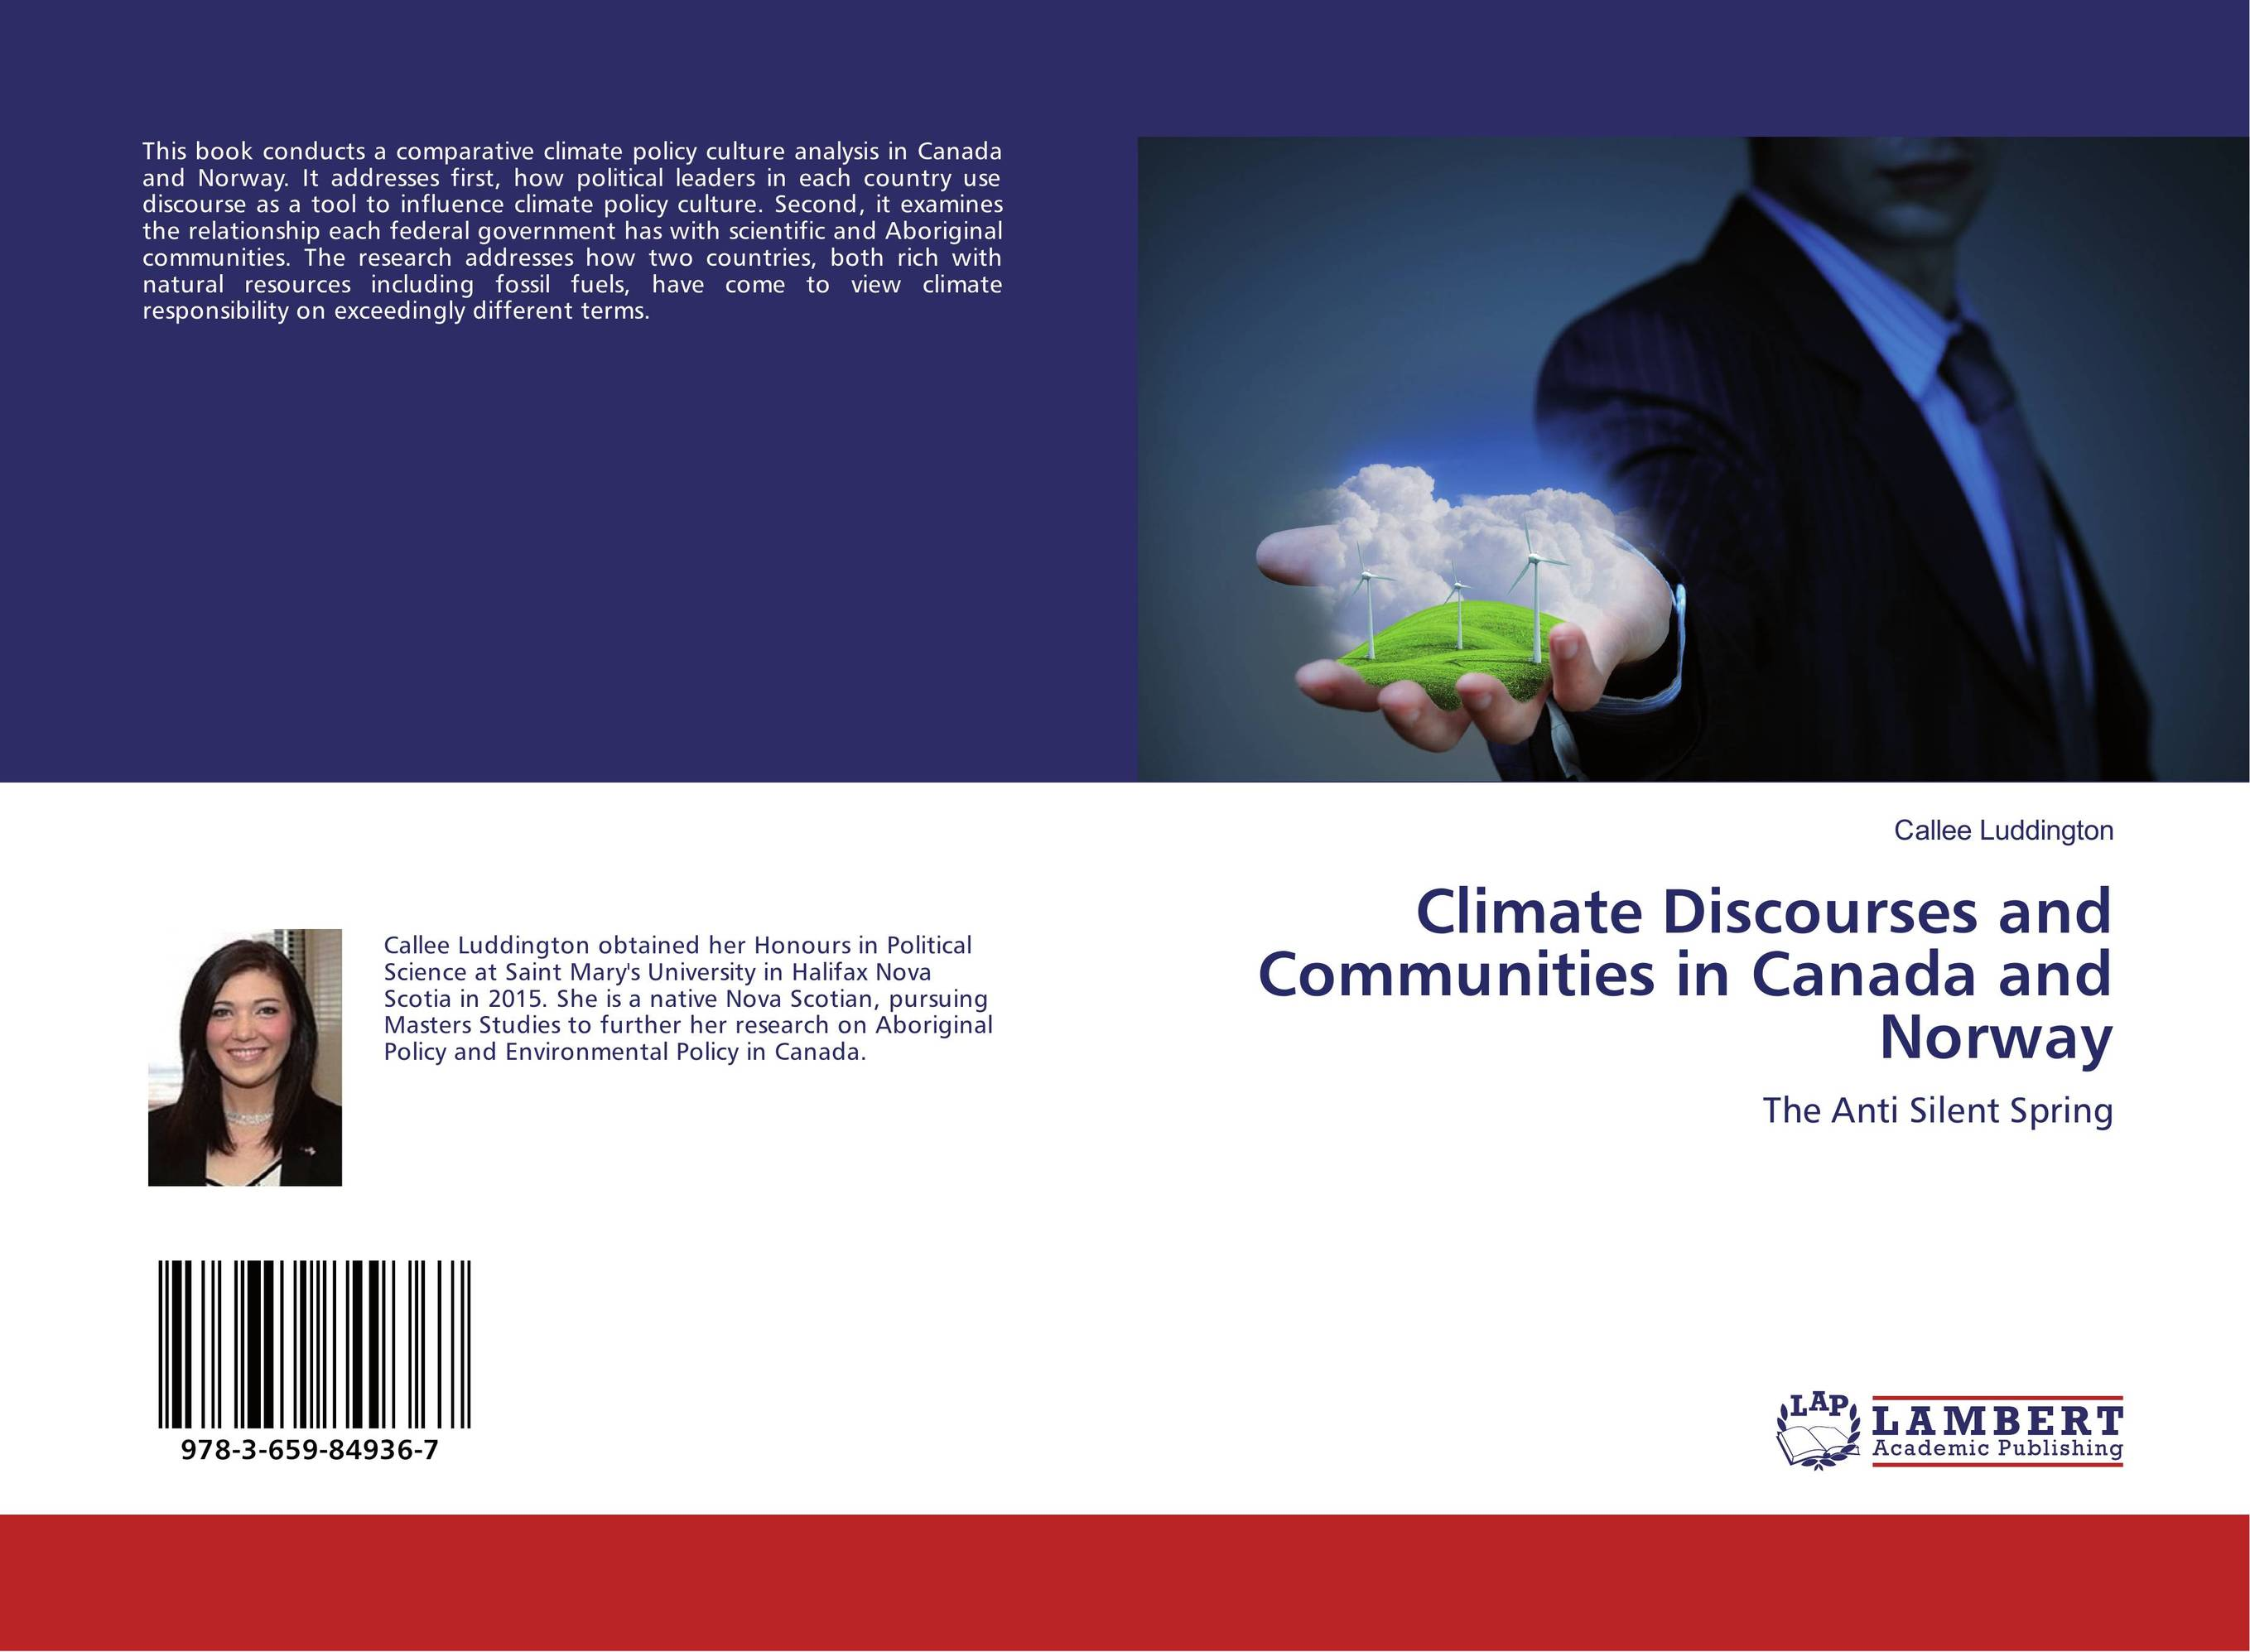 Climate Discourses and Communities in Canada and Norway hannell across canada – resources